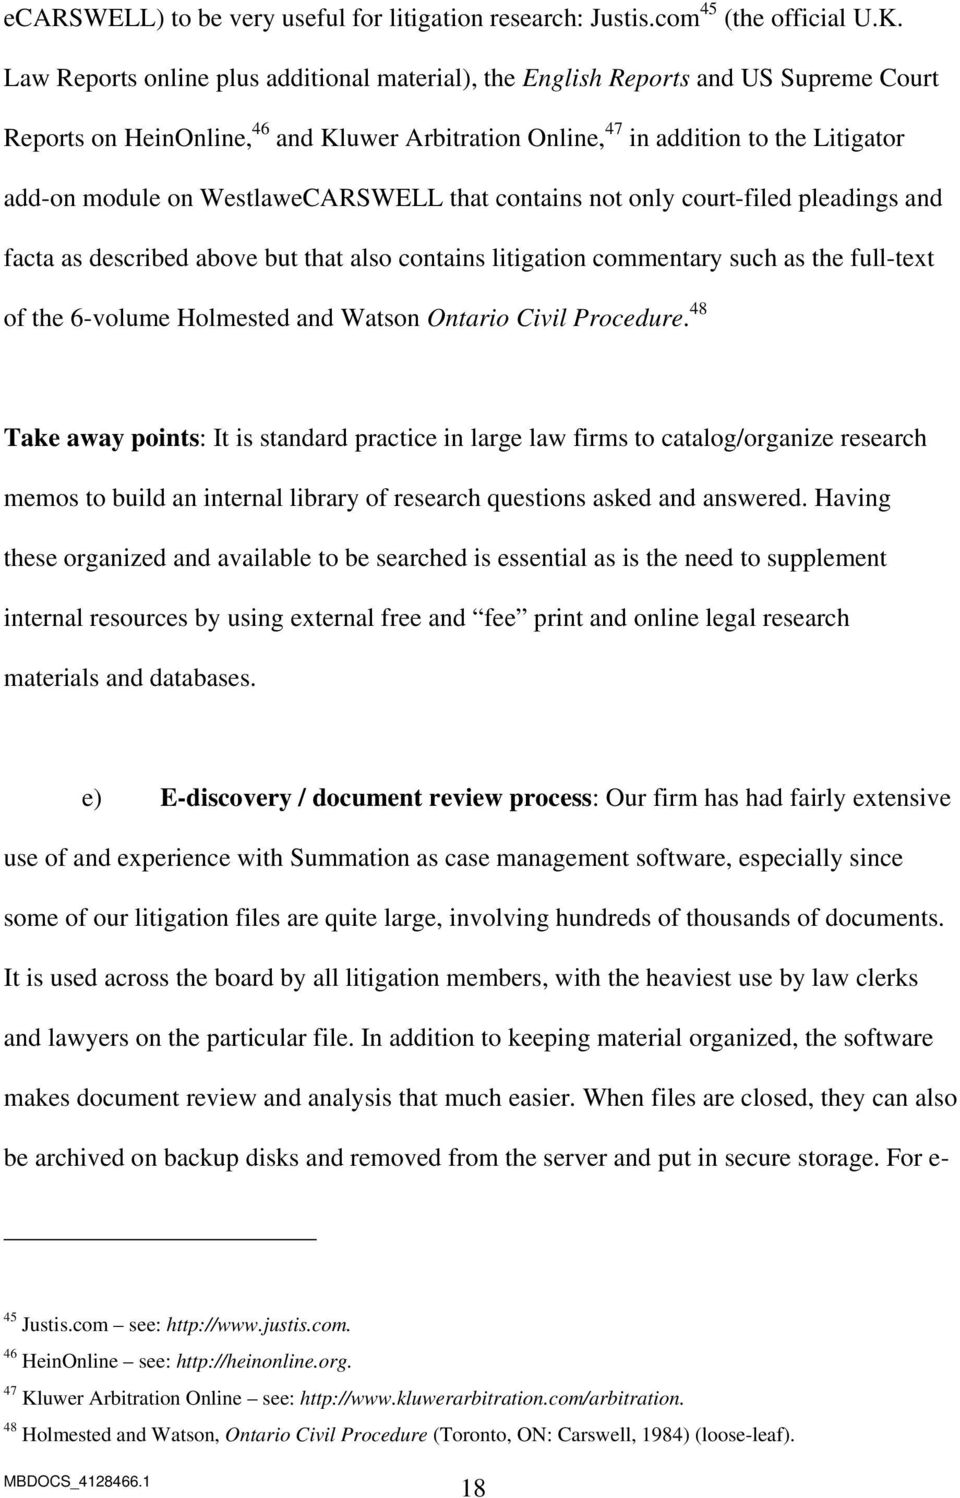 WestlaweCARSWELL that contains not only court-filed pleadings and facta as described above but that also contains litigation commentary such as the full-text of the 6-volume Holmested and Watson